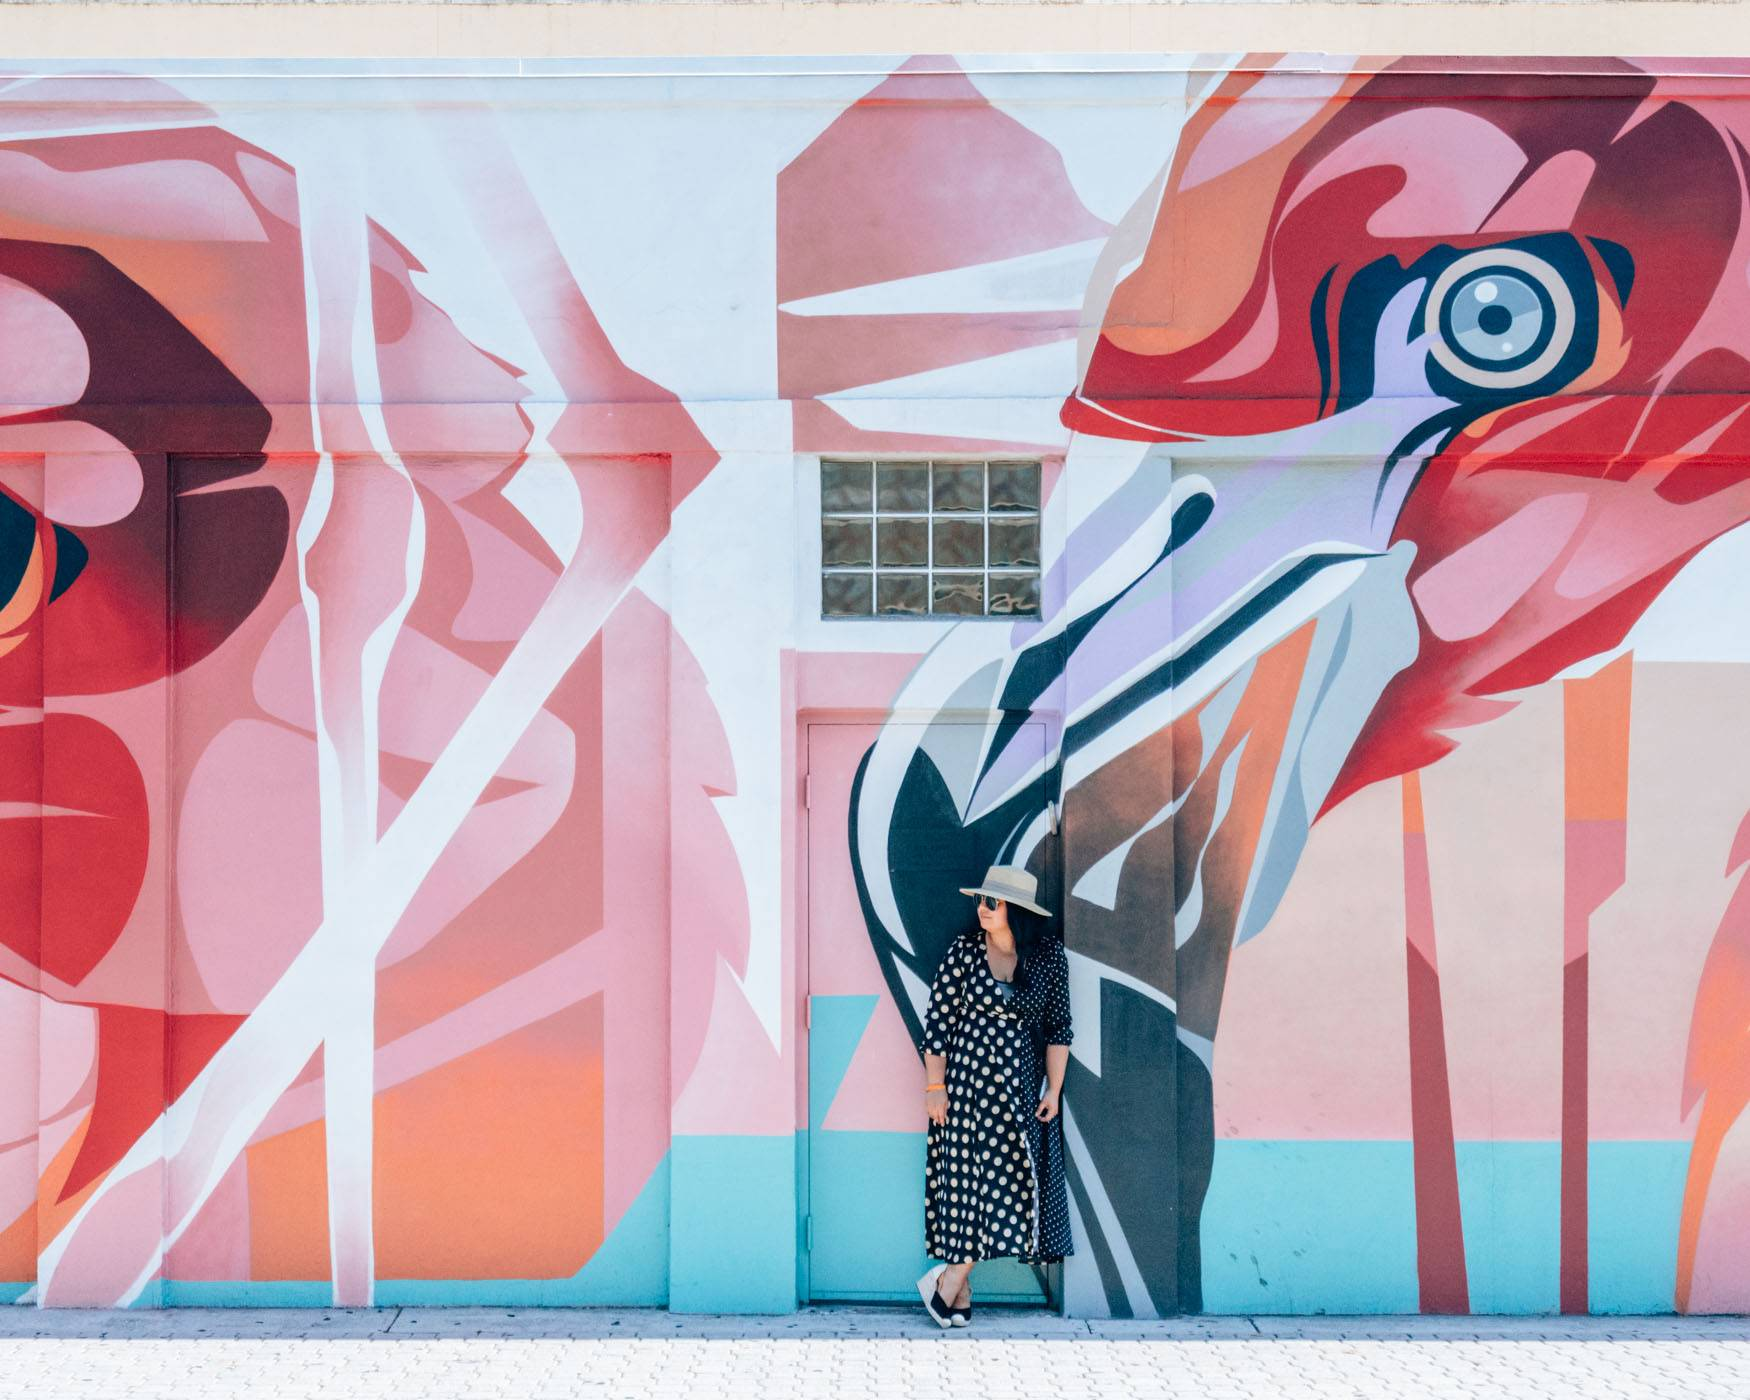 The Downtown hollywood mural project is one of the top things to do in Fort Lauderdale and surrounding areas.